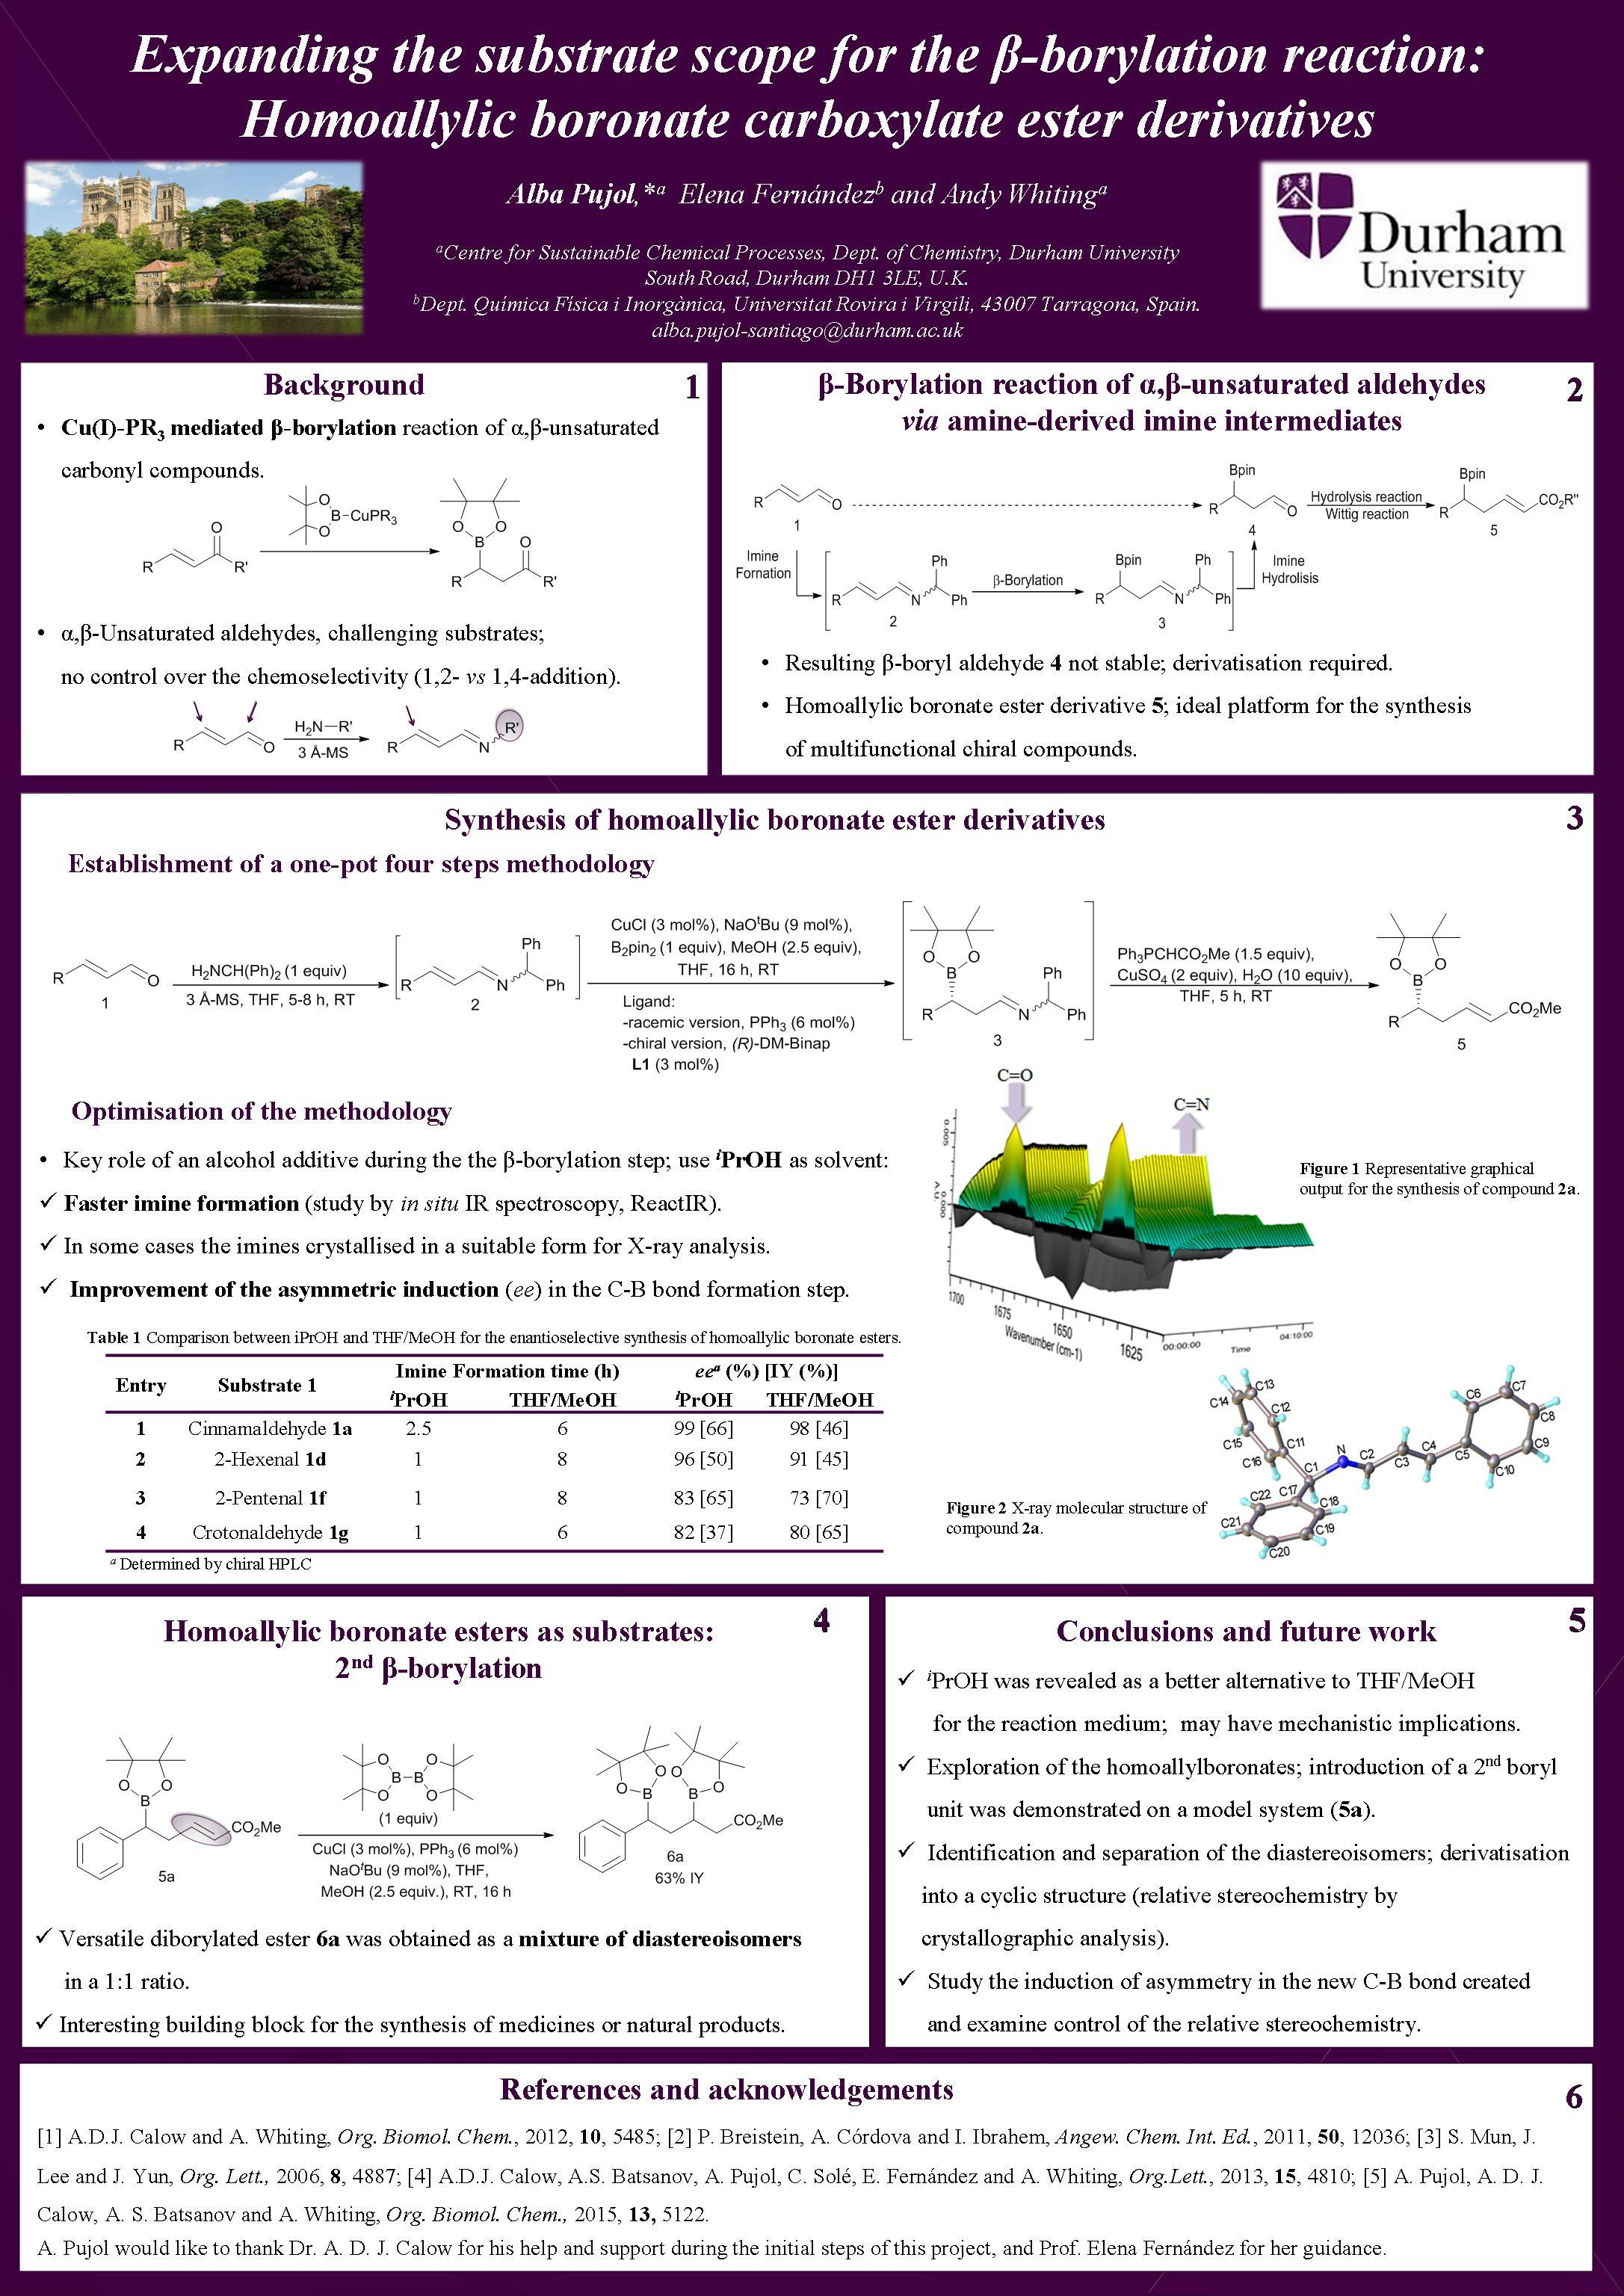 phd thesis of chemistry Research topics in chemistry cover a wide range of areas including analytical, educational, environmental, inorganic, materials, organic and physical chemistry.